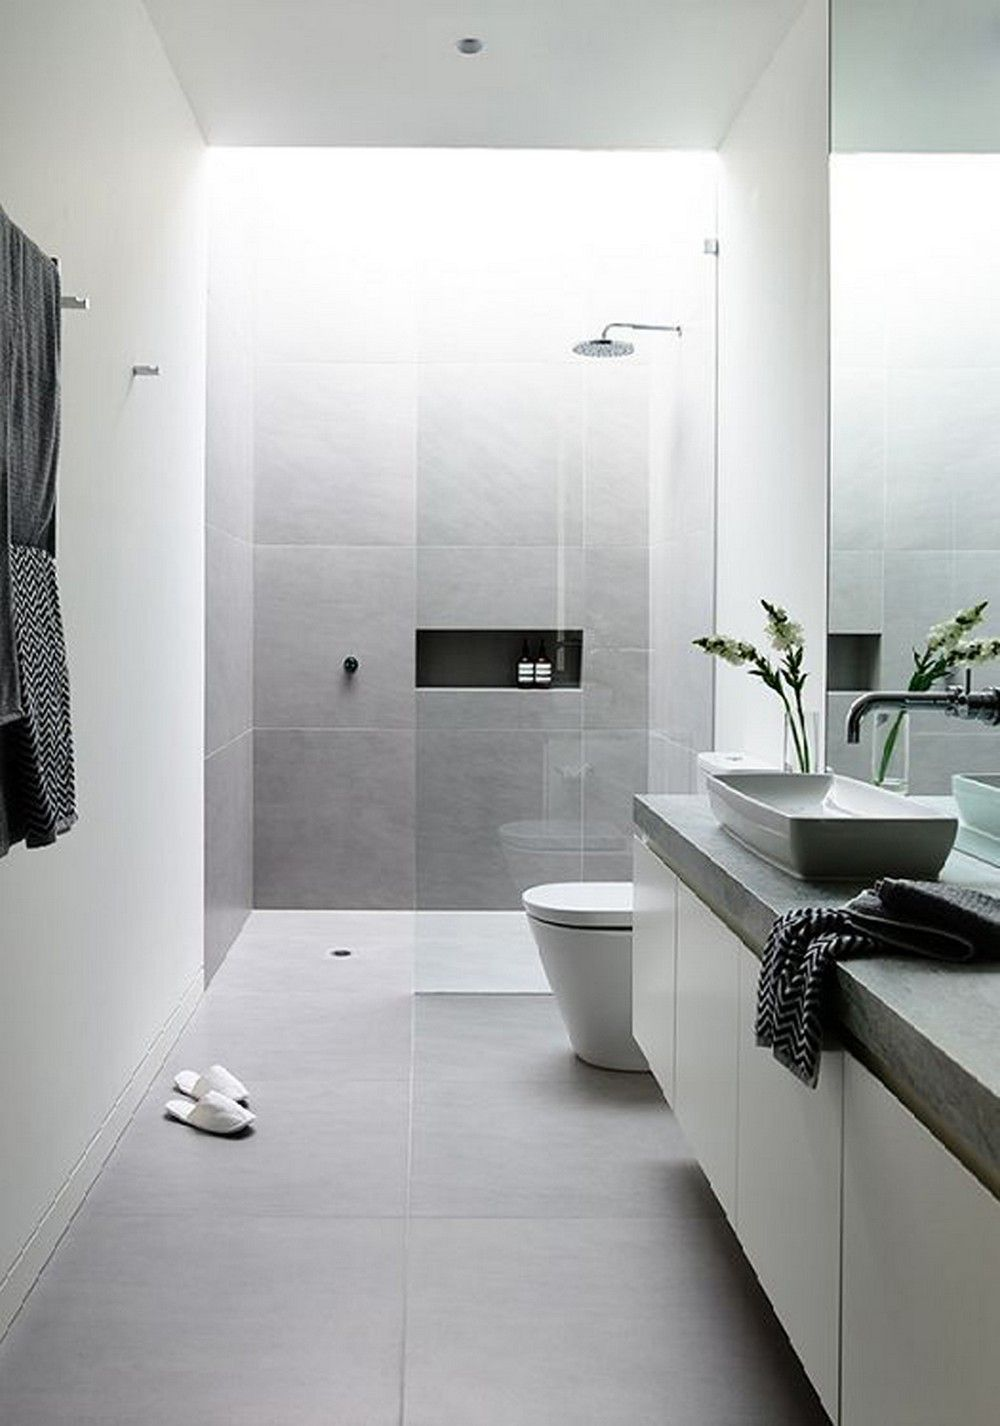 106 Clever Small Bathroom Decorating Ideas | Small bathroom, Small ...